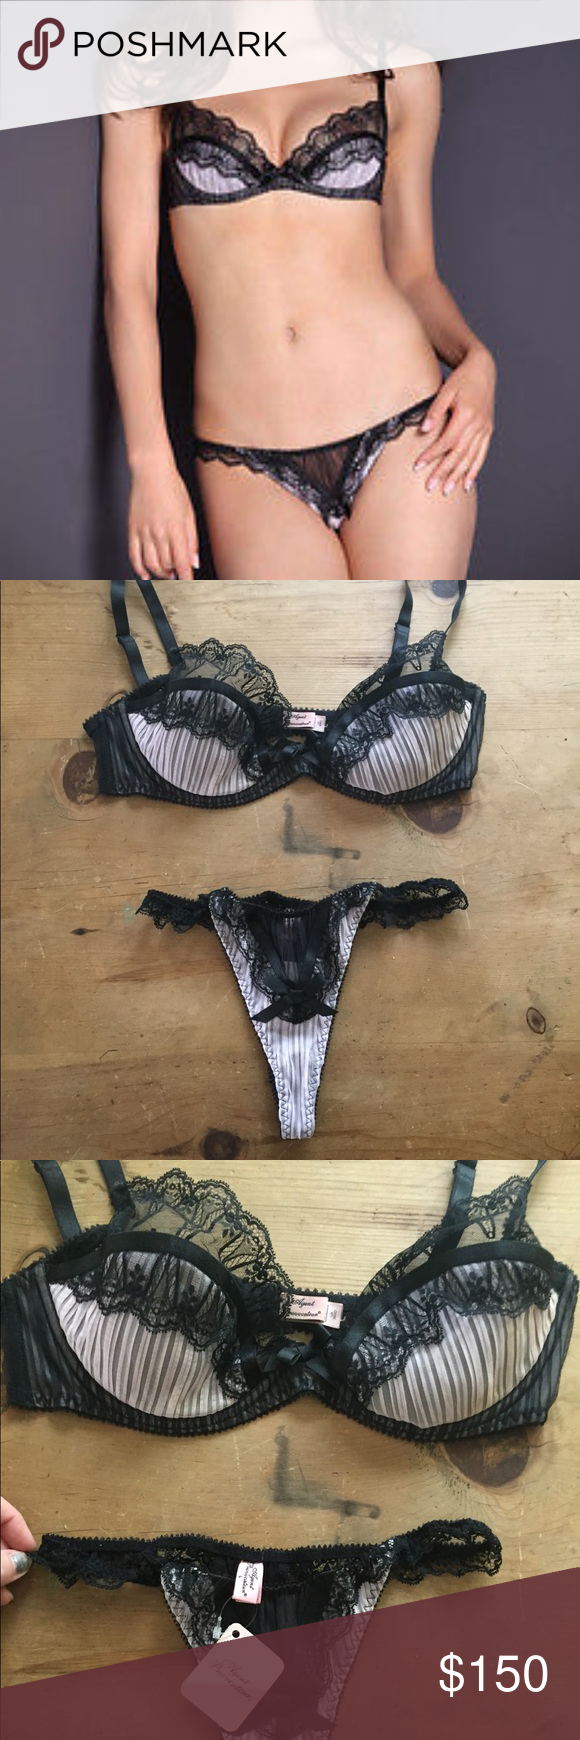 Agent Provocateur Fifi Bra 36D and Thong Large Stunning Authentic black and  pink Agent Provocateur Classic Fifi bra and thong! Bra is 36D and fits true  to ... 39cfec049